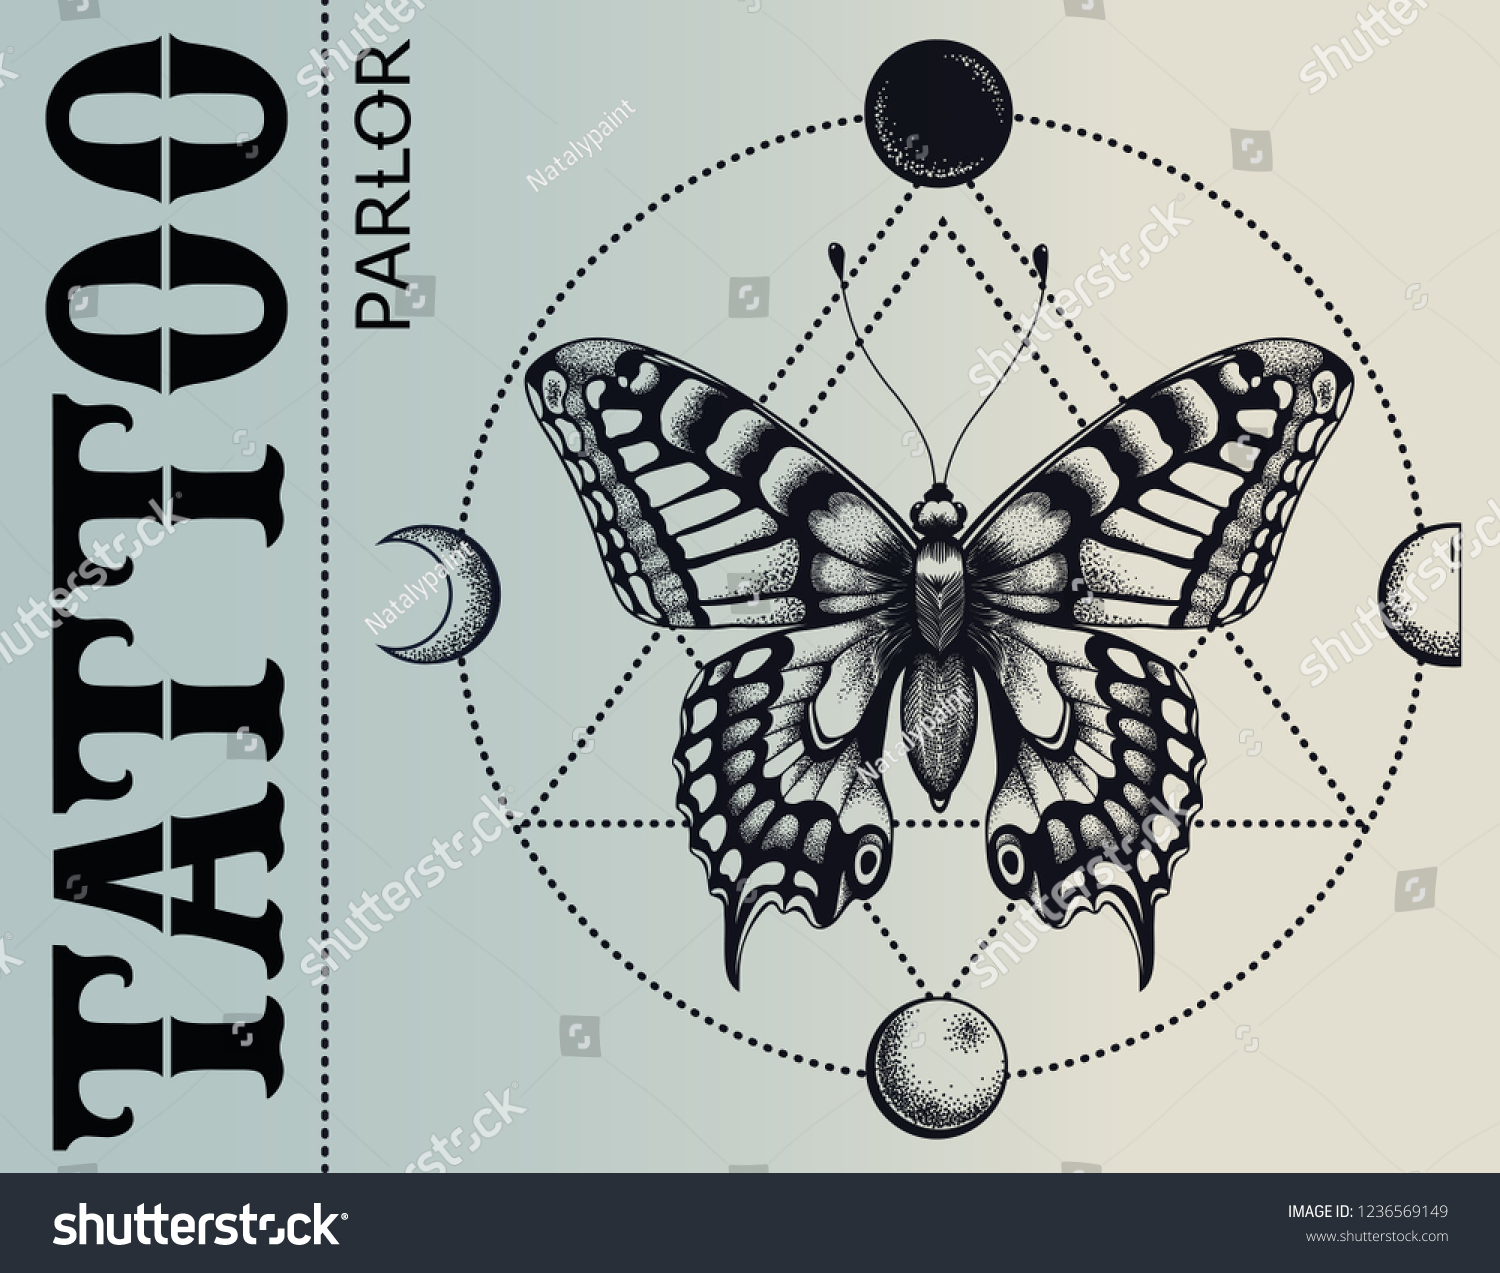 d1ee2baa4 Tattoo parlor banner. Mistical butterfly is inscribed in circle of moon  phases. Vector banner.